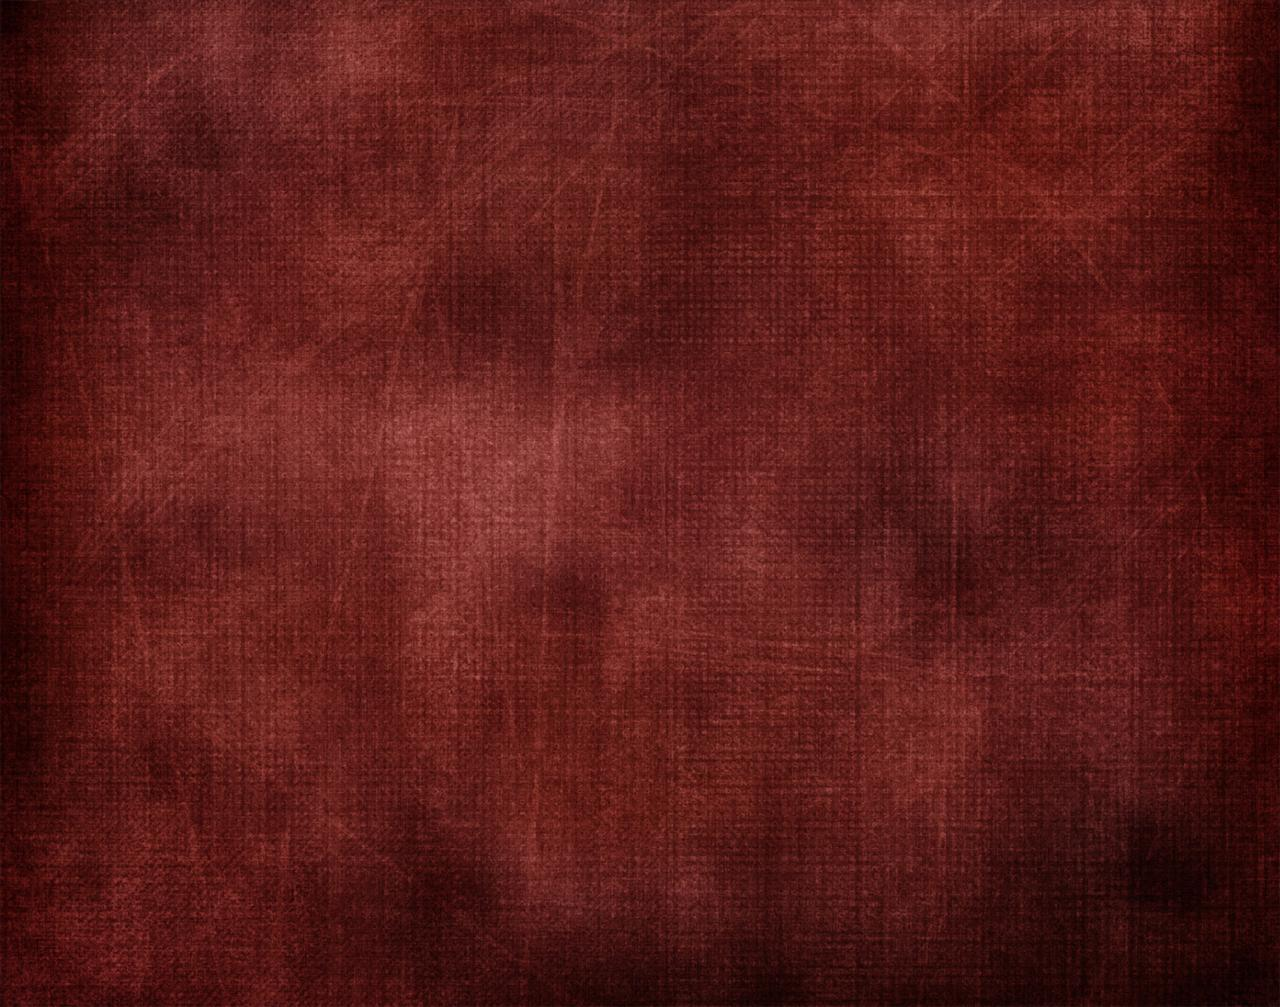 Use This Background In Your Picaboo Photo Book Gold High Resolution Maroon Background 1280x1007 Download Hd Wallpaper Wallpapertip Find and download maroon powerpoint backgrounds on hipwallpaper. gold high resolution maroon background